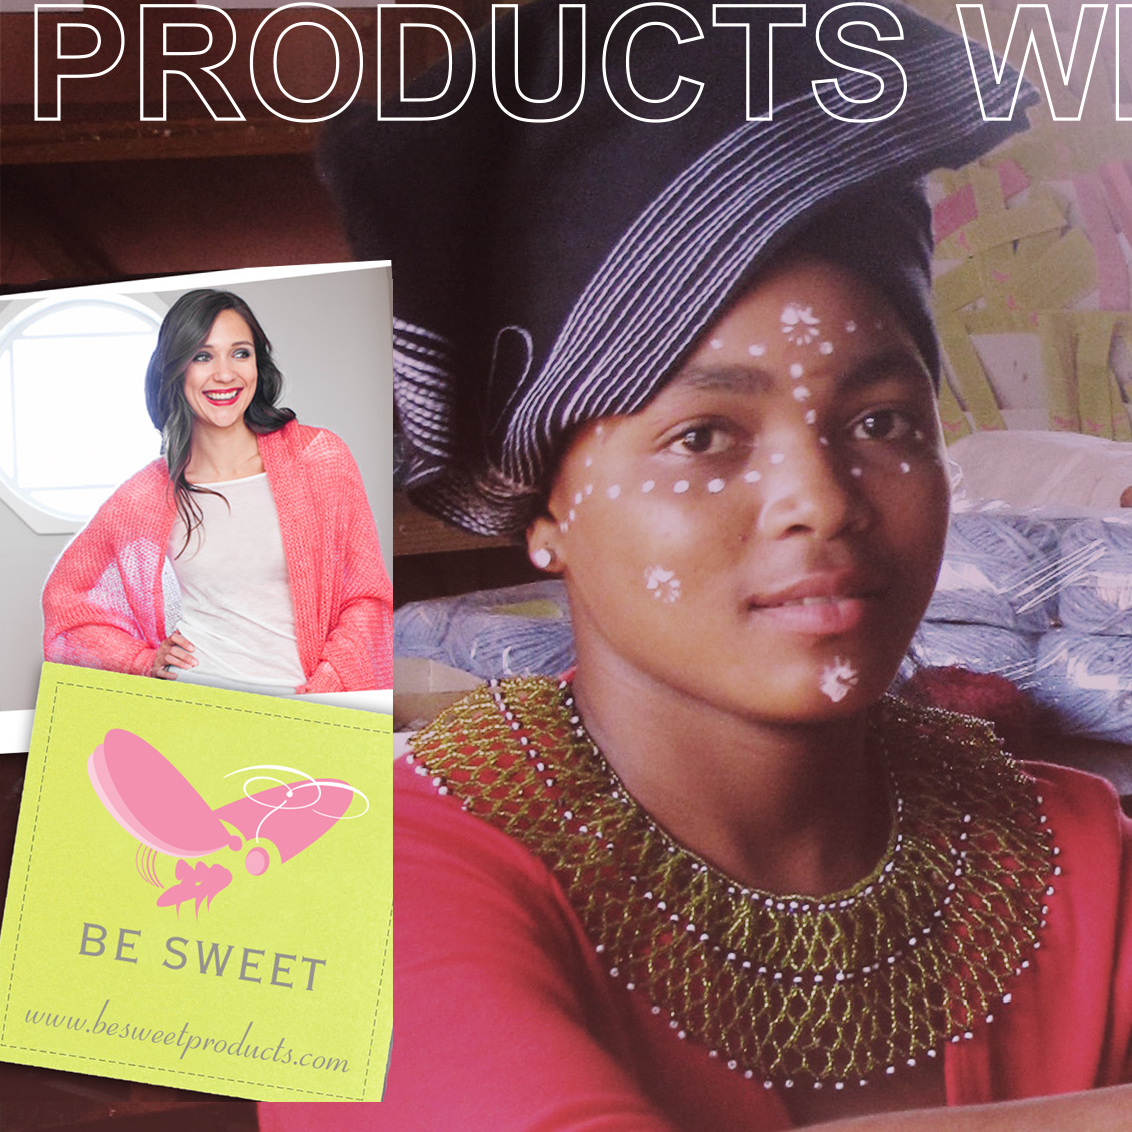 Be Sweet - Founder, Creative Director